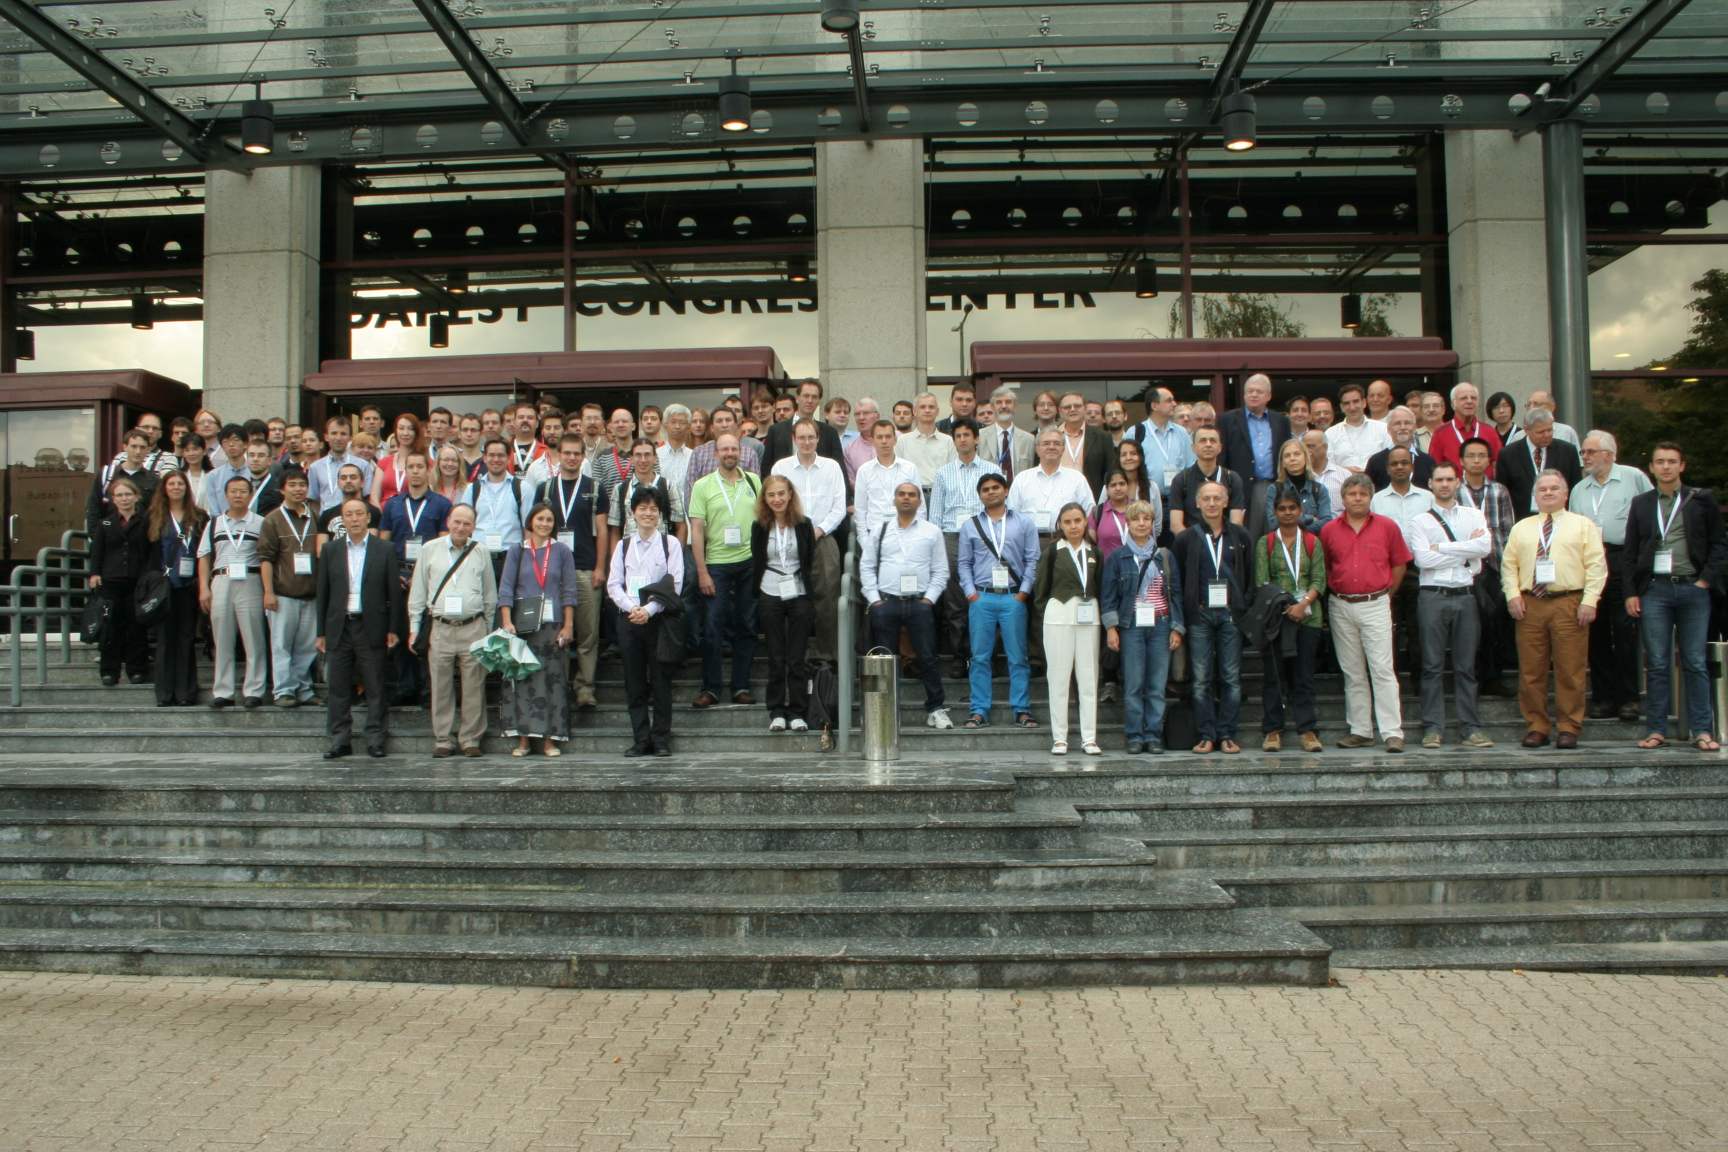 VIIIth Congress of the International Society of Theoretical Chemical Physics 2013